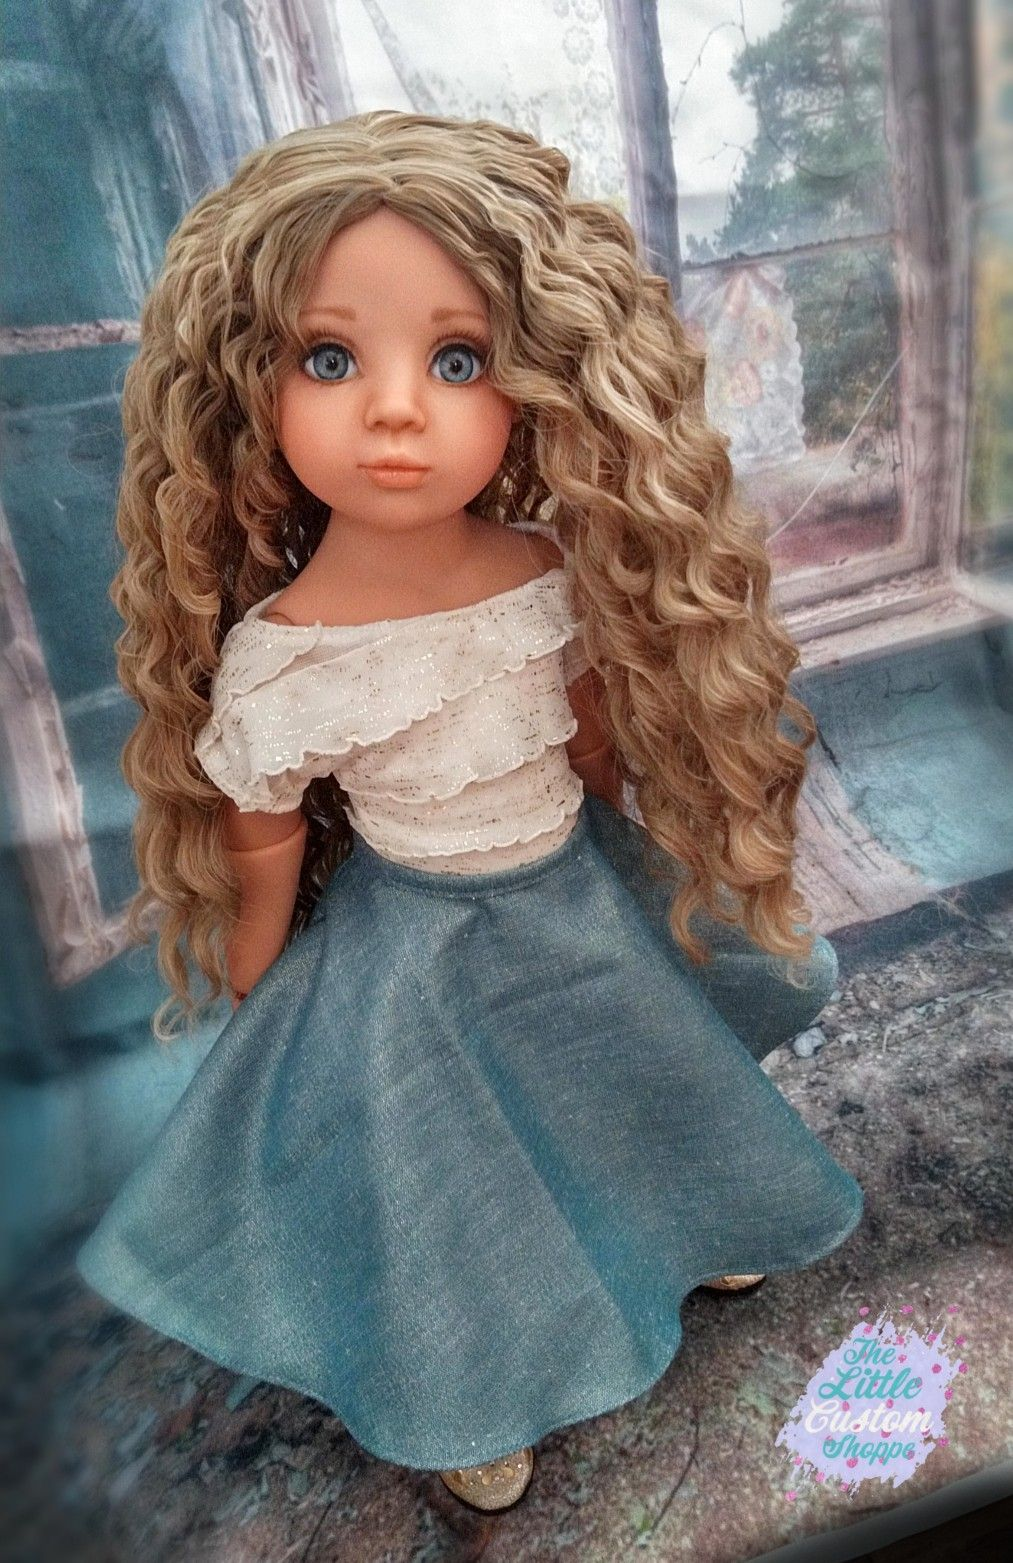 Viktoria Gotz Happy Kidz Chosen artist doll by Shai Hoffer at The Little Custom Shoppe OOAK puppe  #naturalashblonde